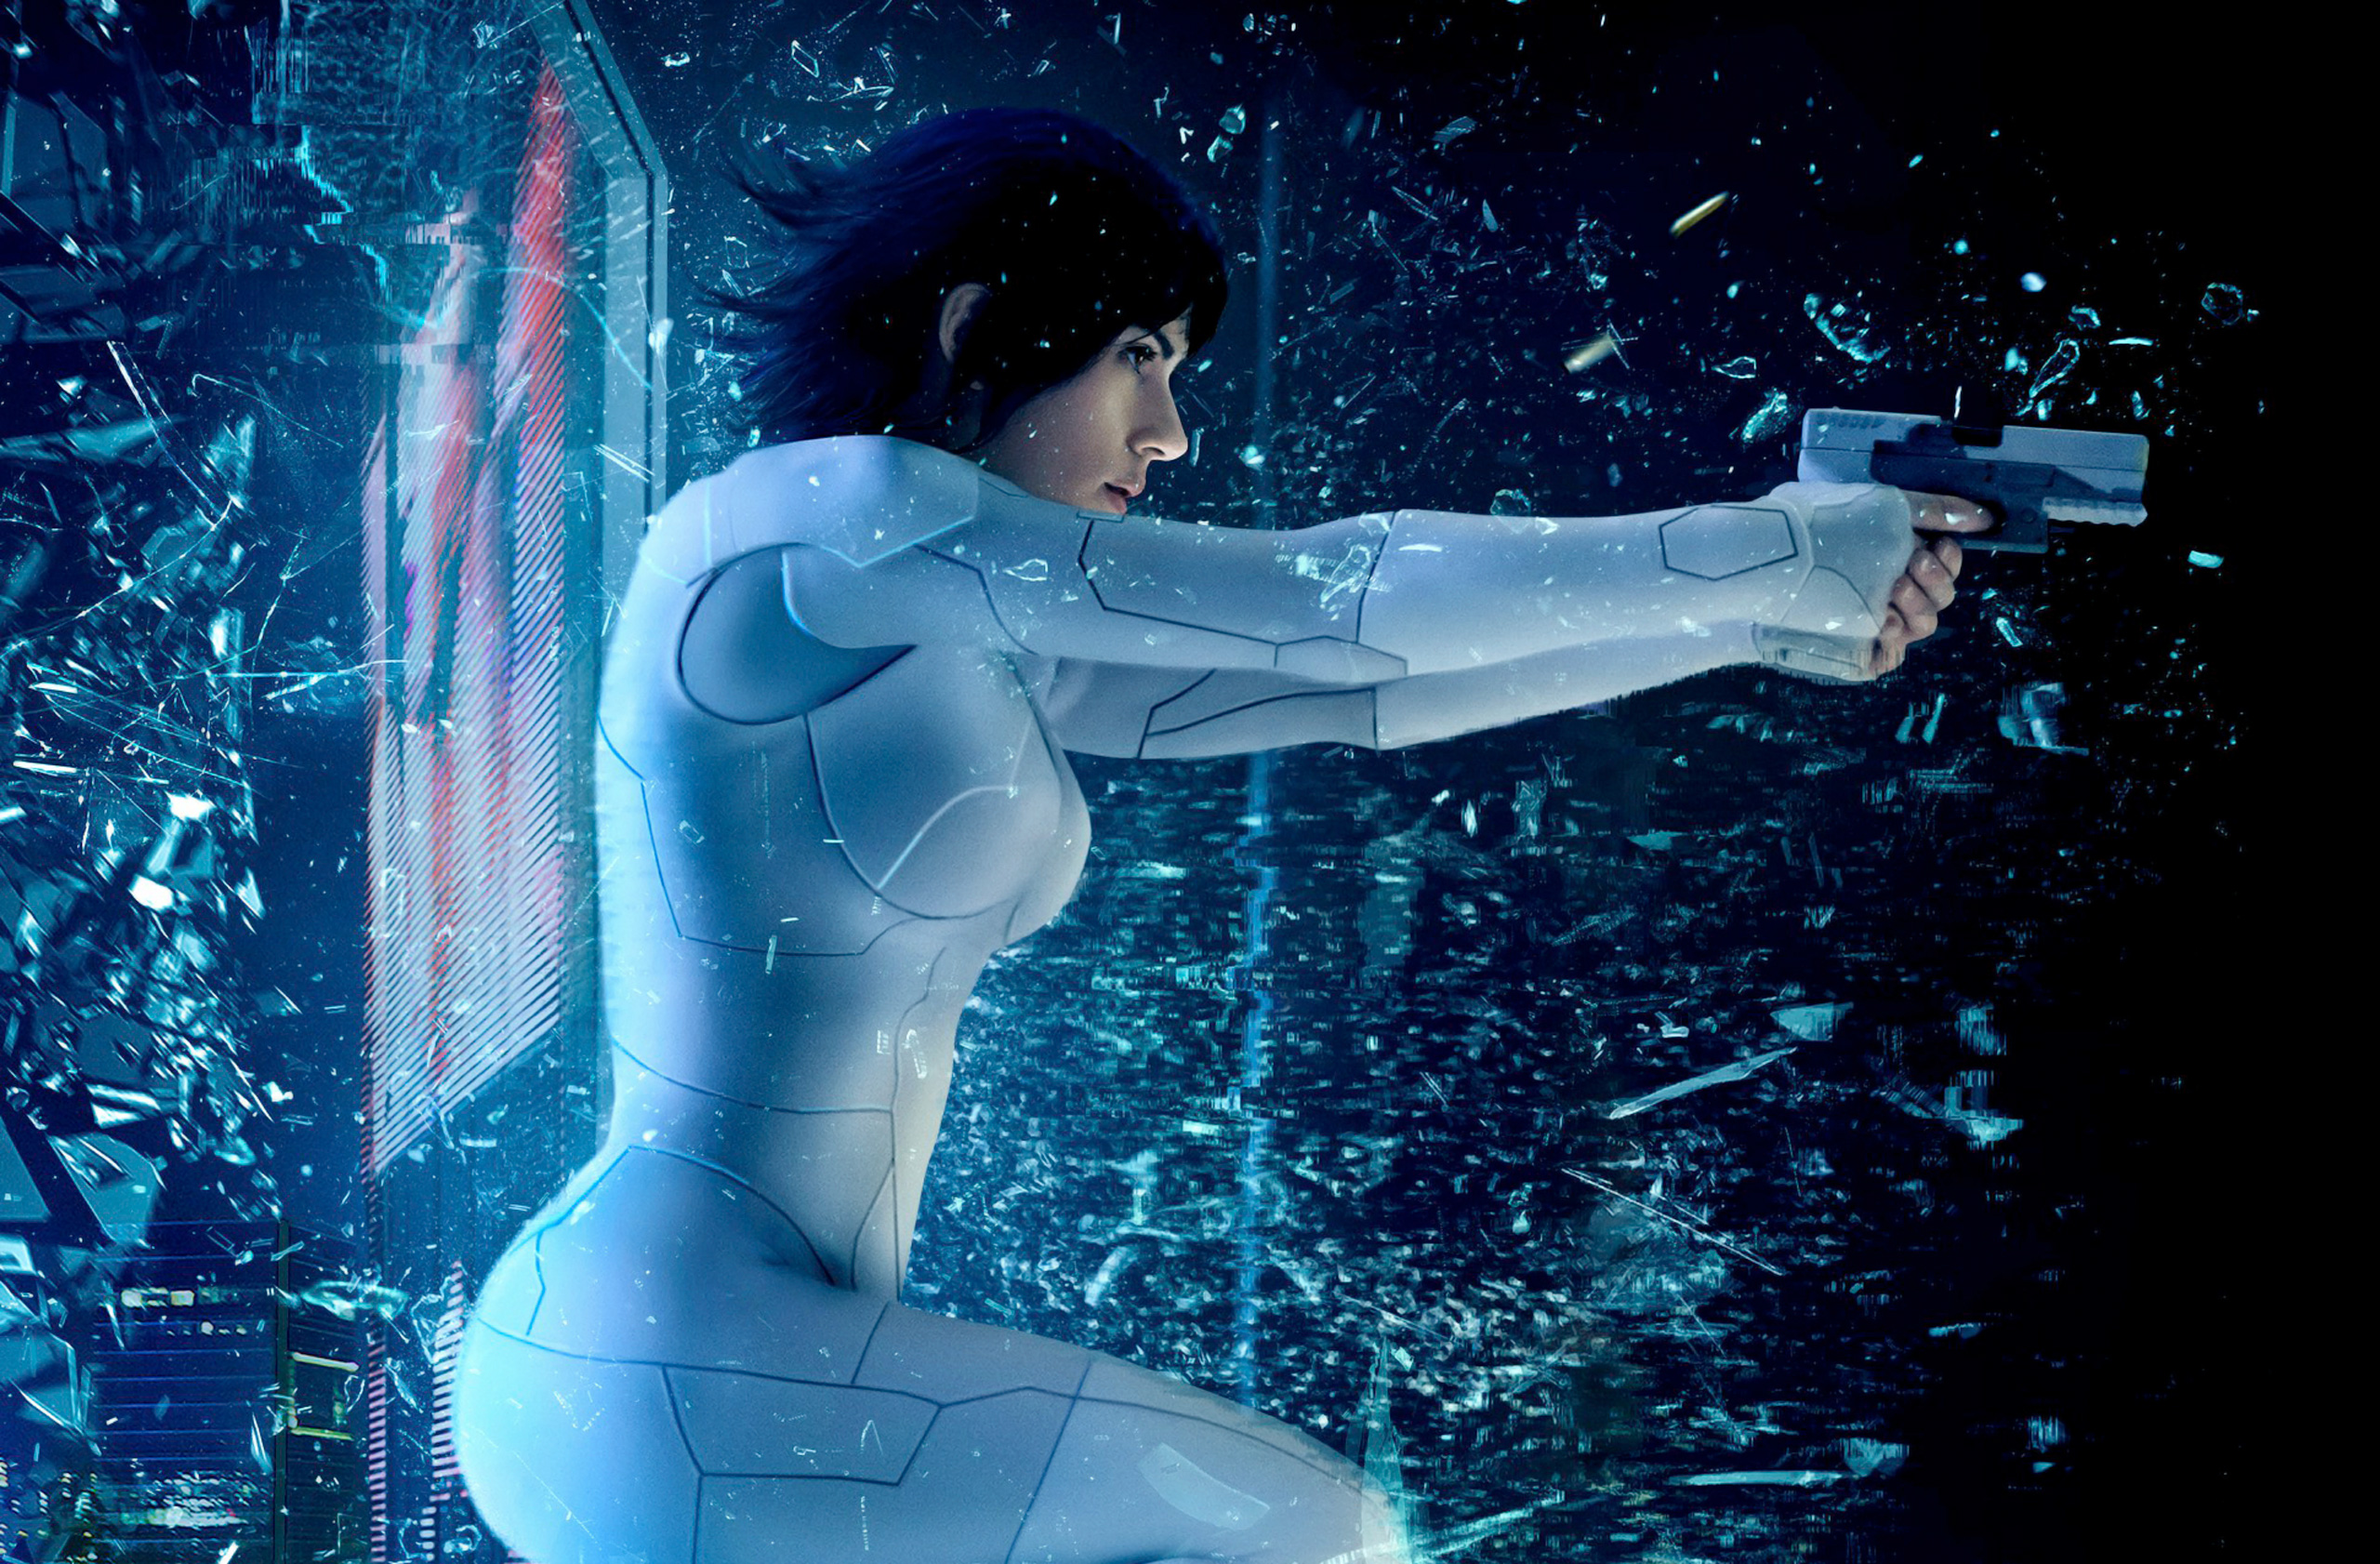 Ghost In The Shell 2017 Movie Hd Movies 4k Wallpapers Images